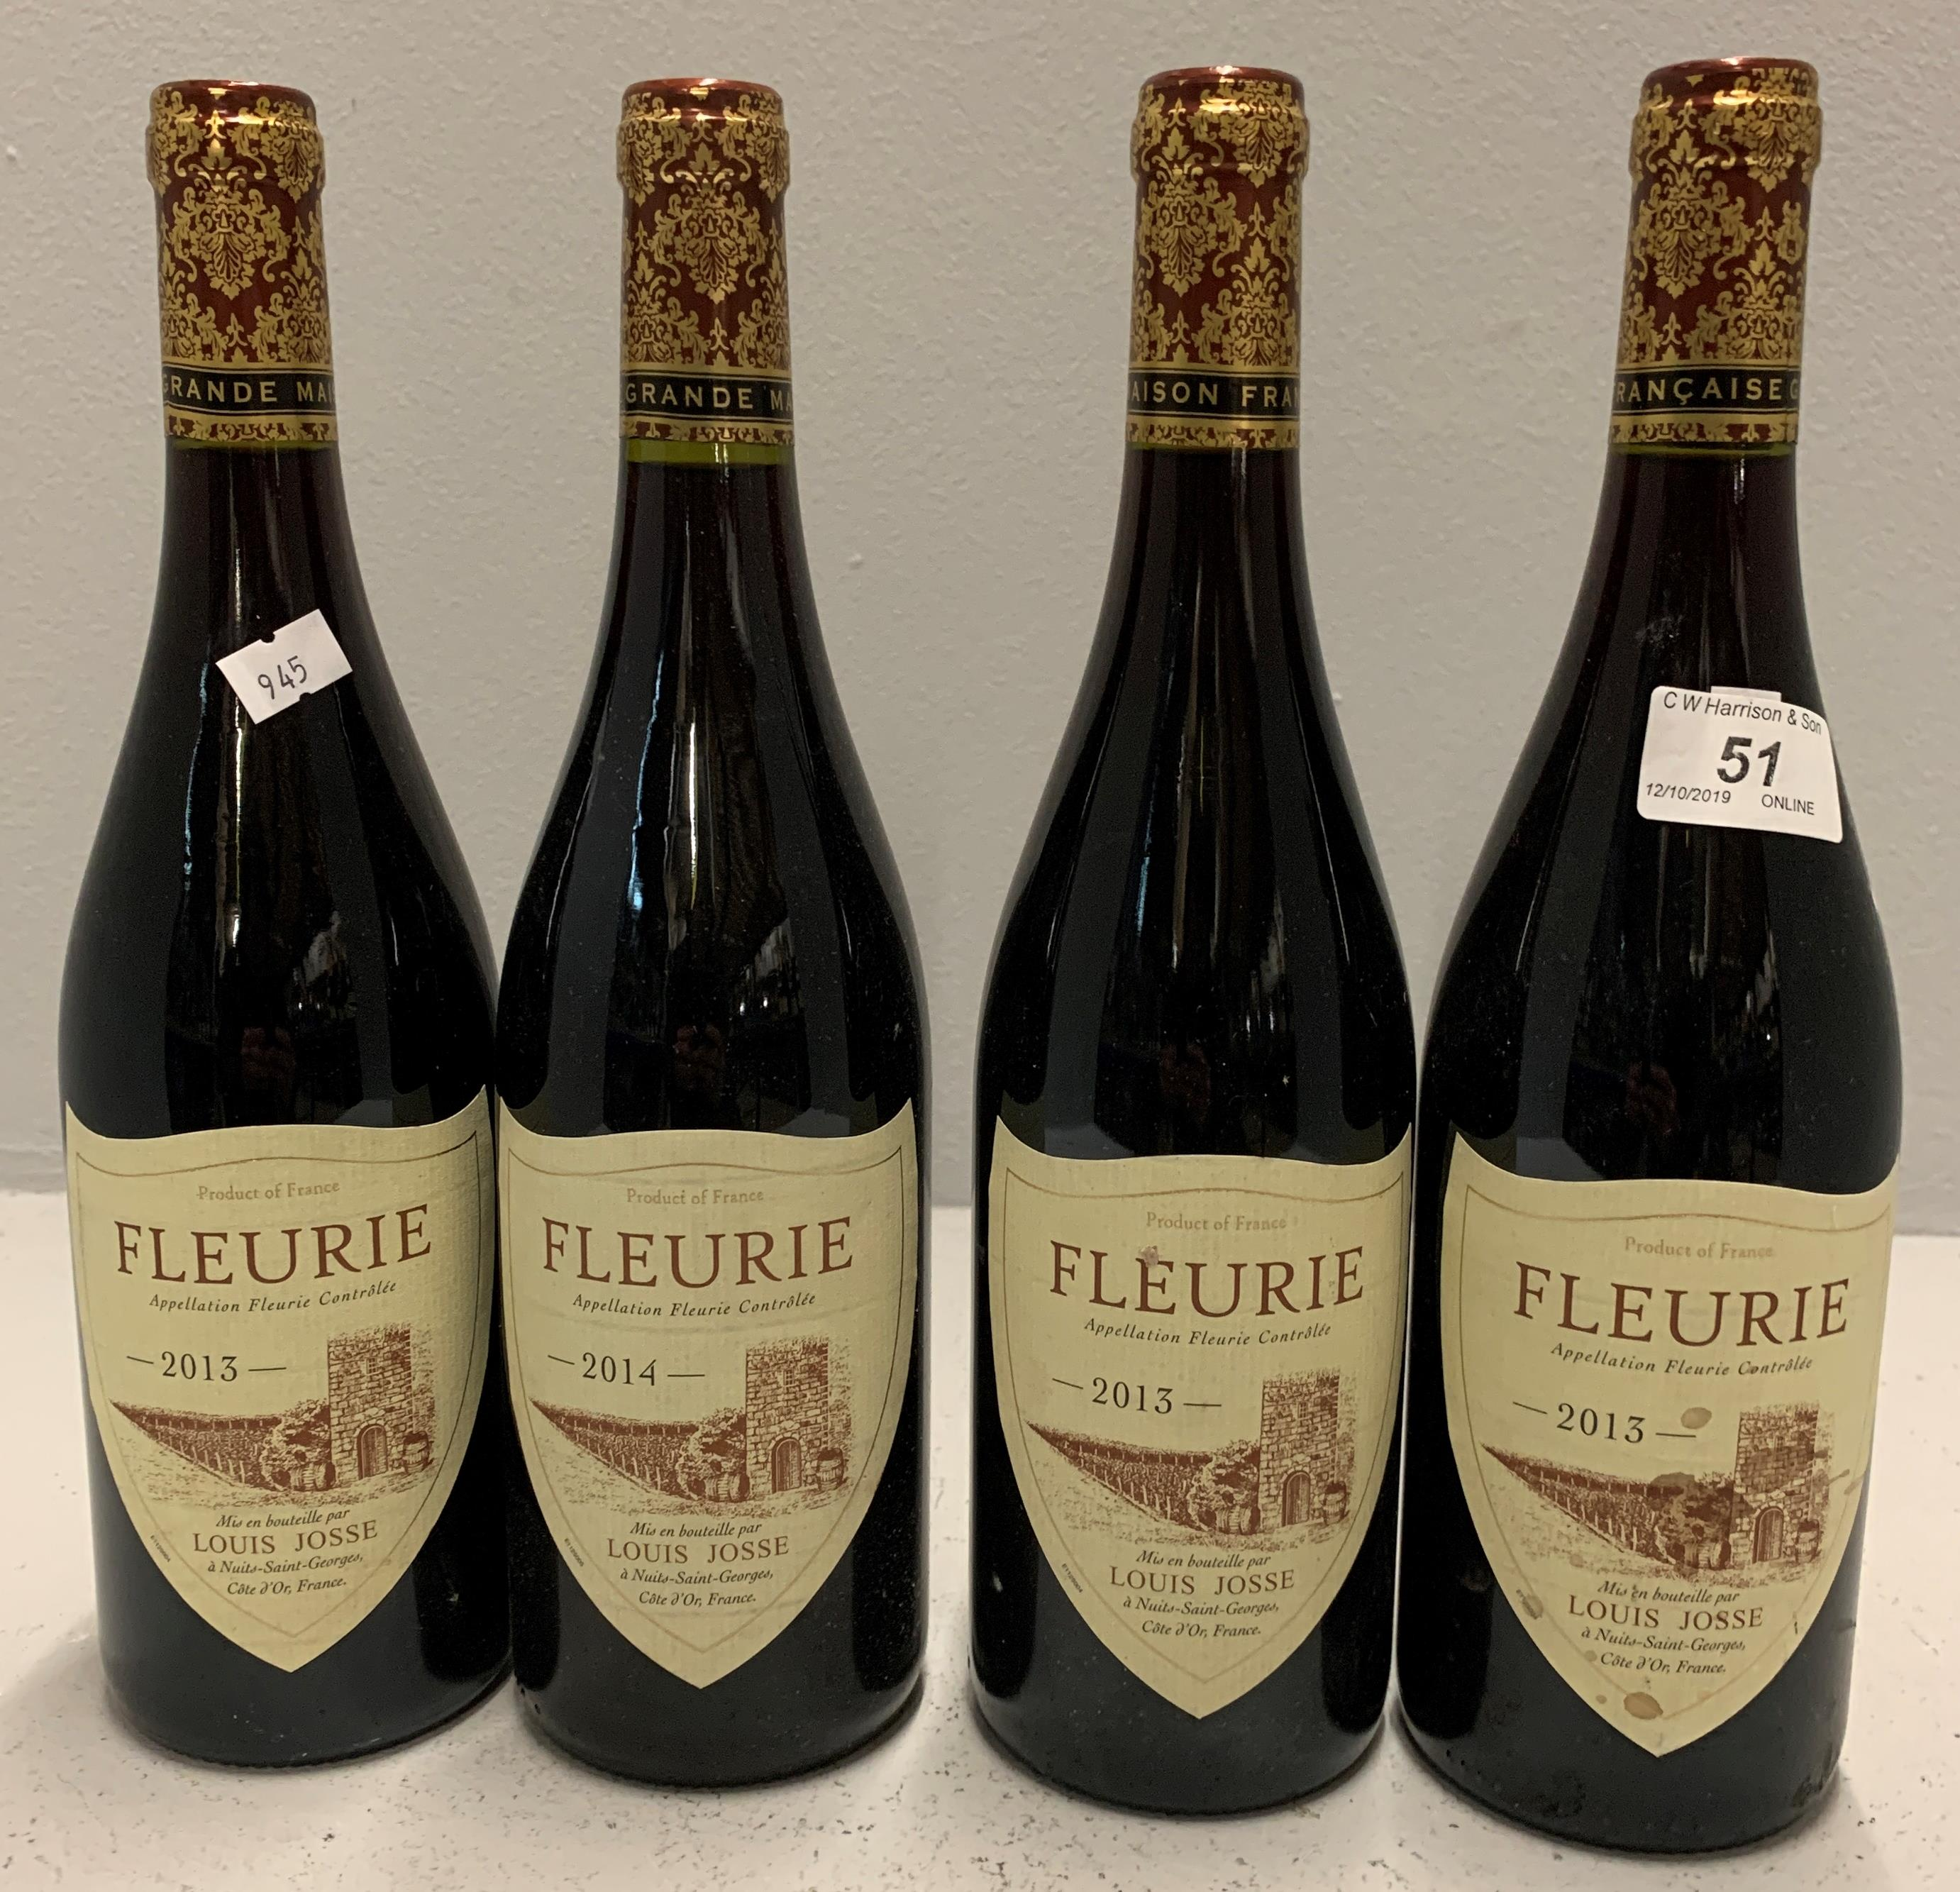 Lot 51 - 4 x 750ml bottles Louis Josse Fleurie